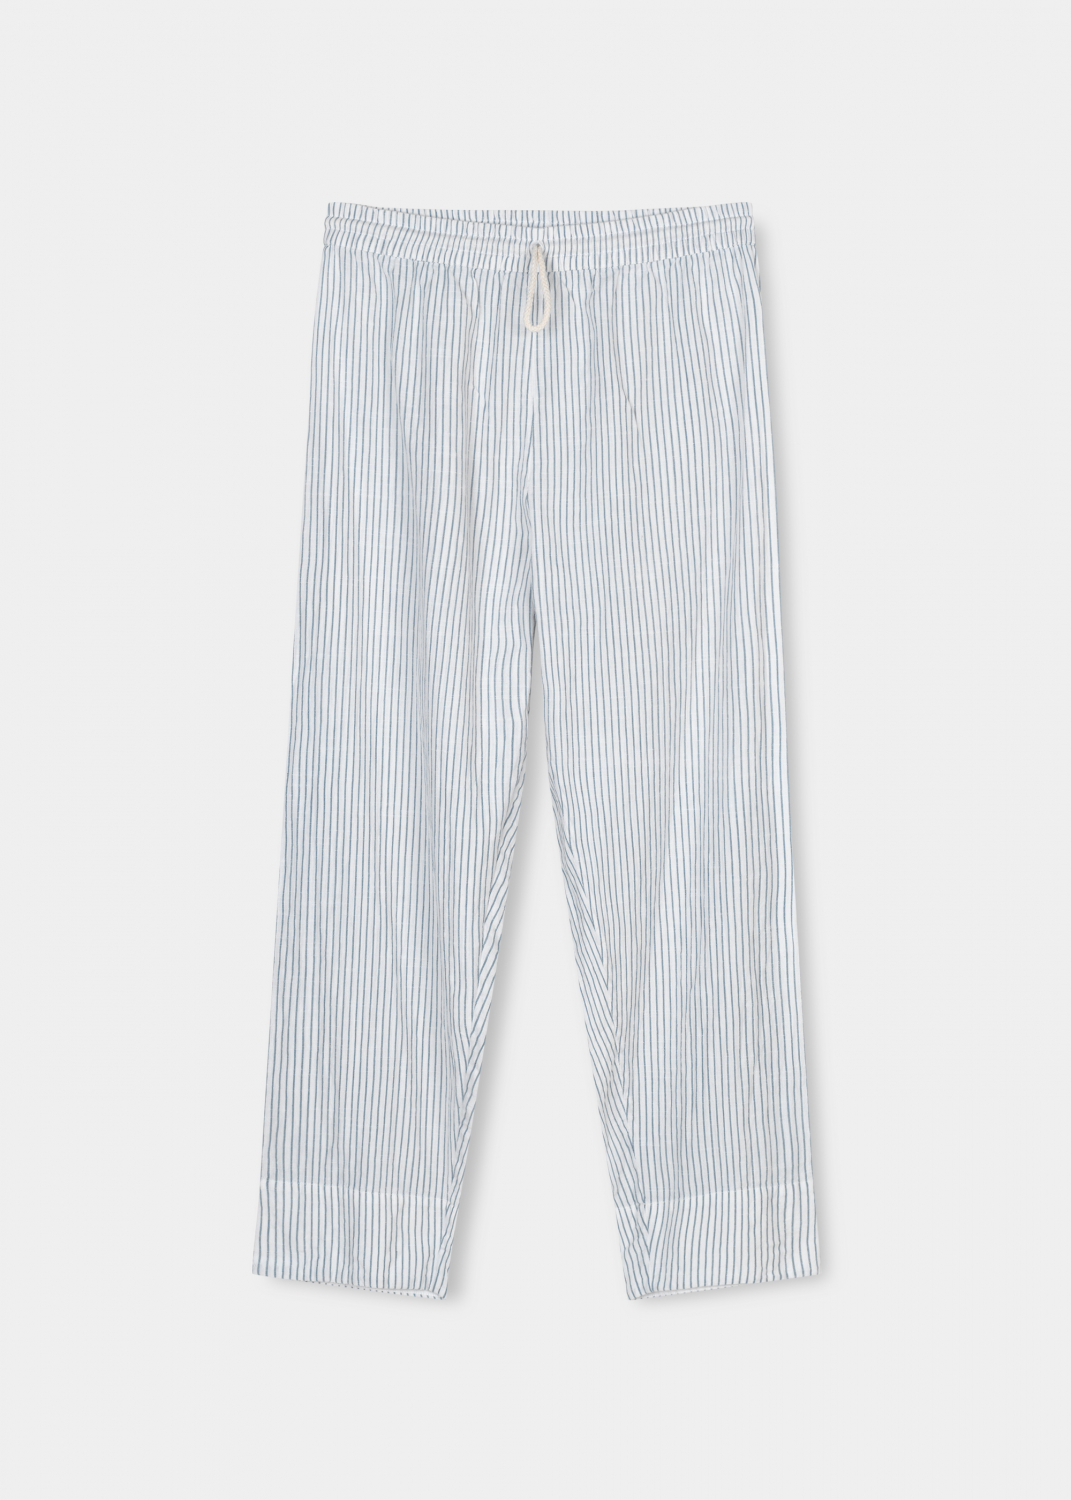 Hosen & Shorts - Lilja Pant Striped Thumbnail